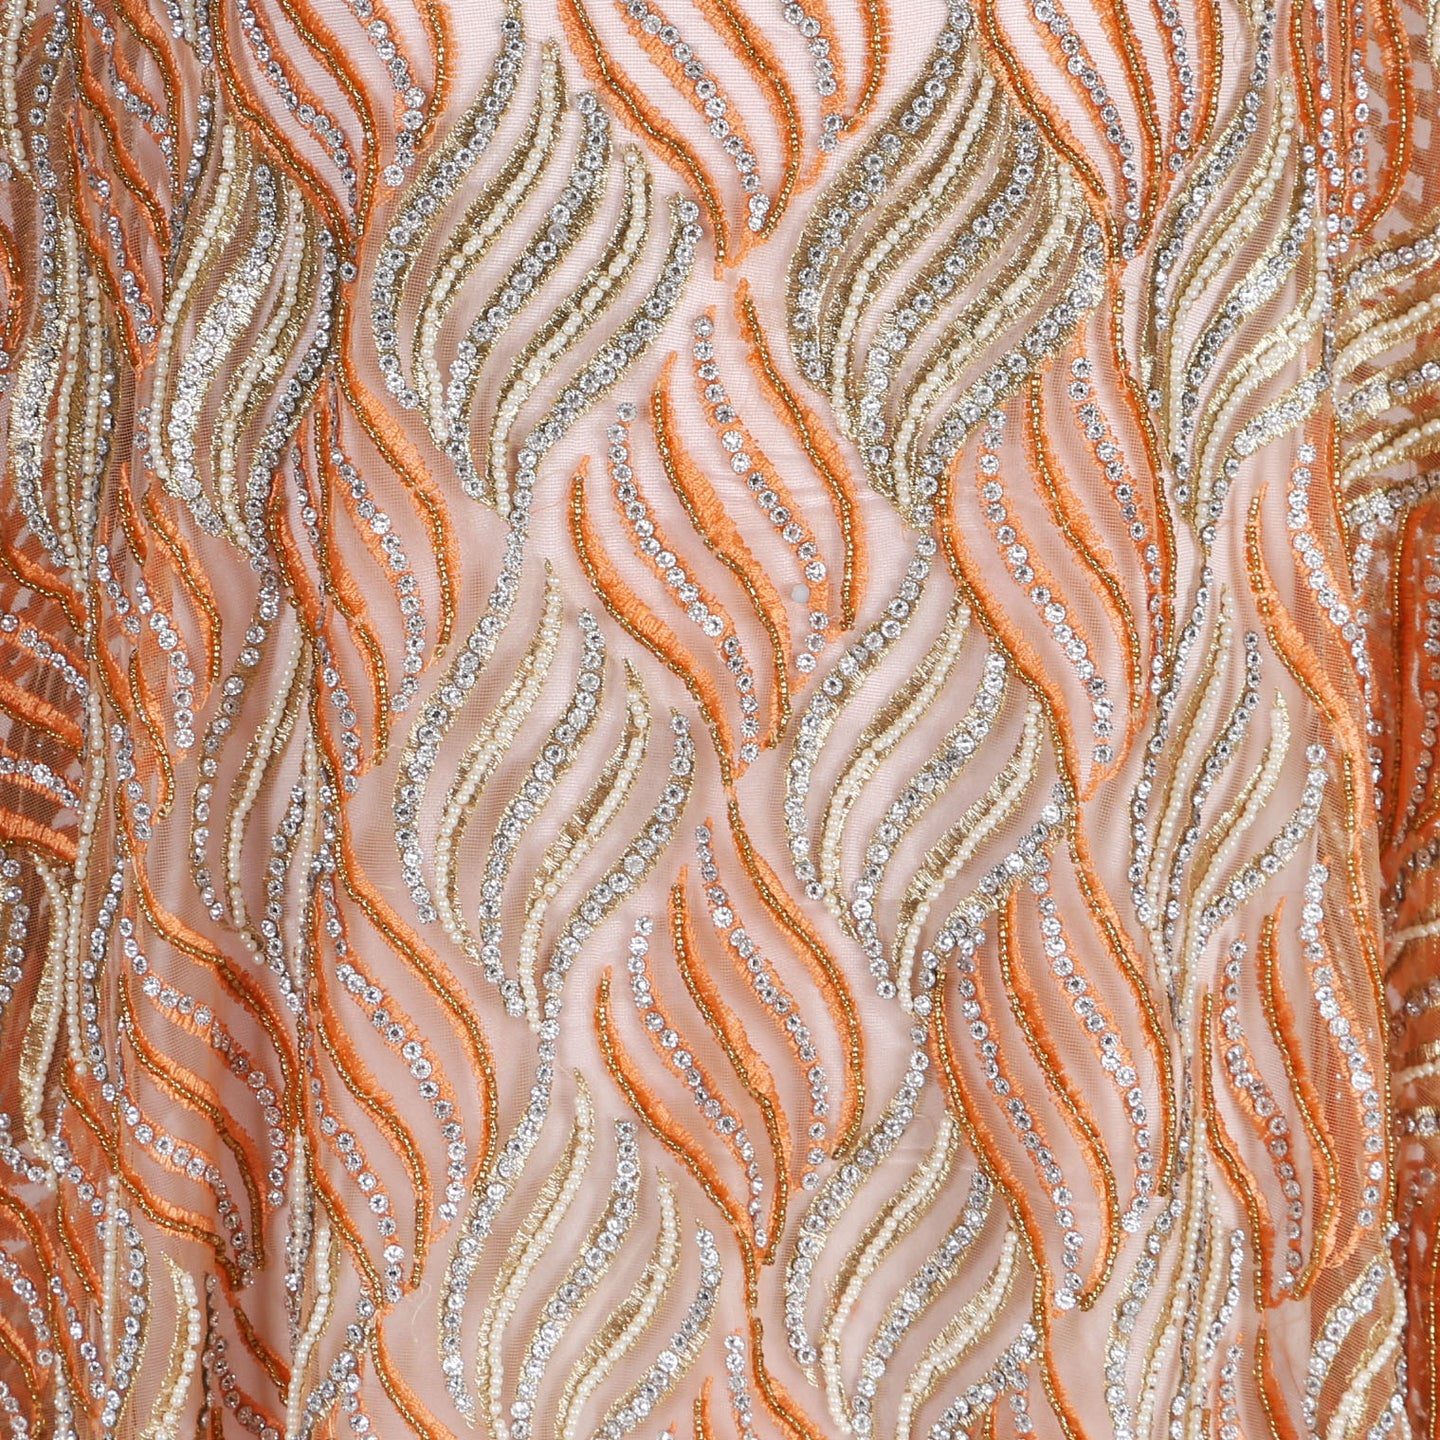 Hand Embroidered Fabric Design # 4114 - Peach - 5 Yard Piece